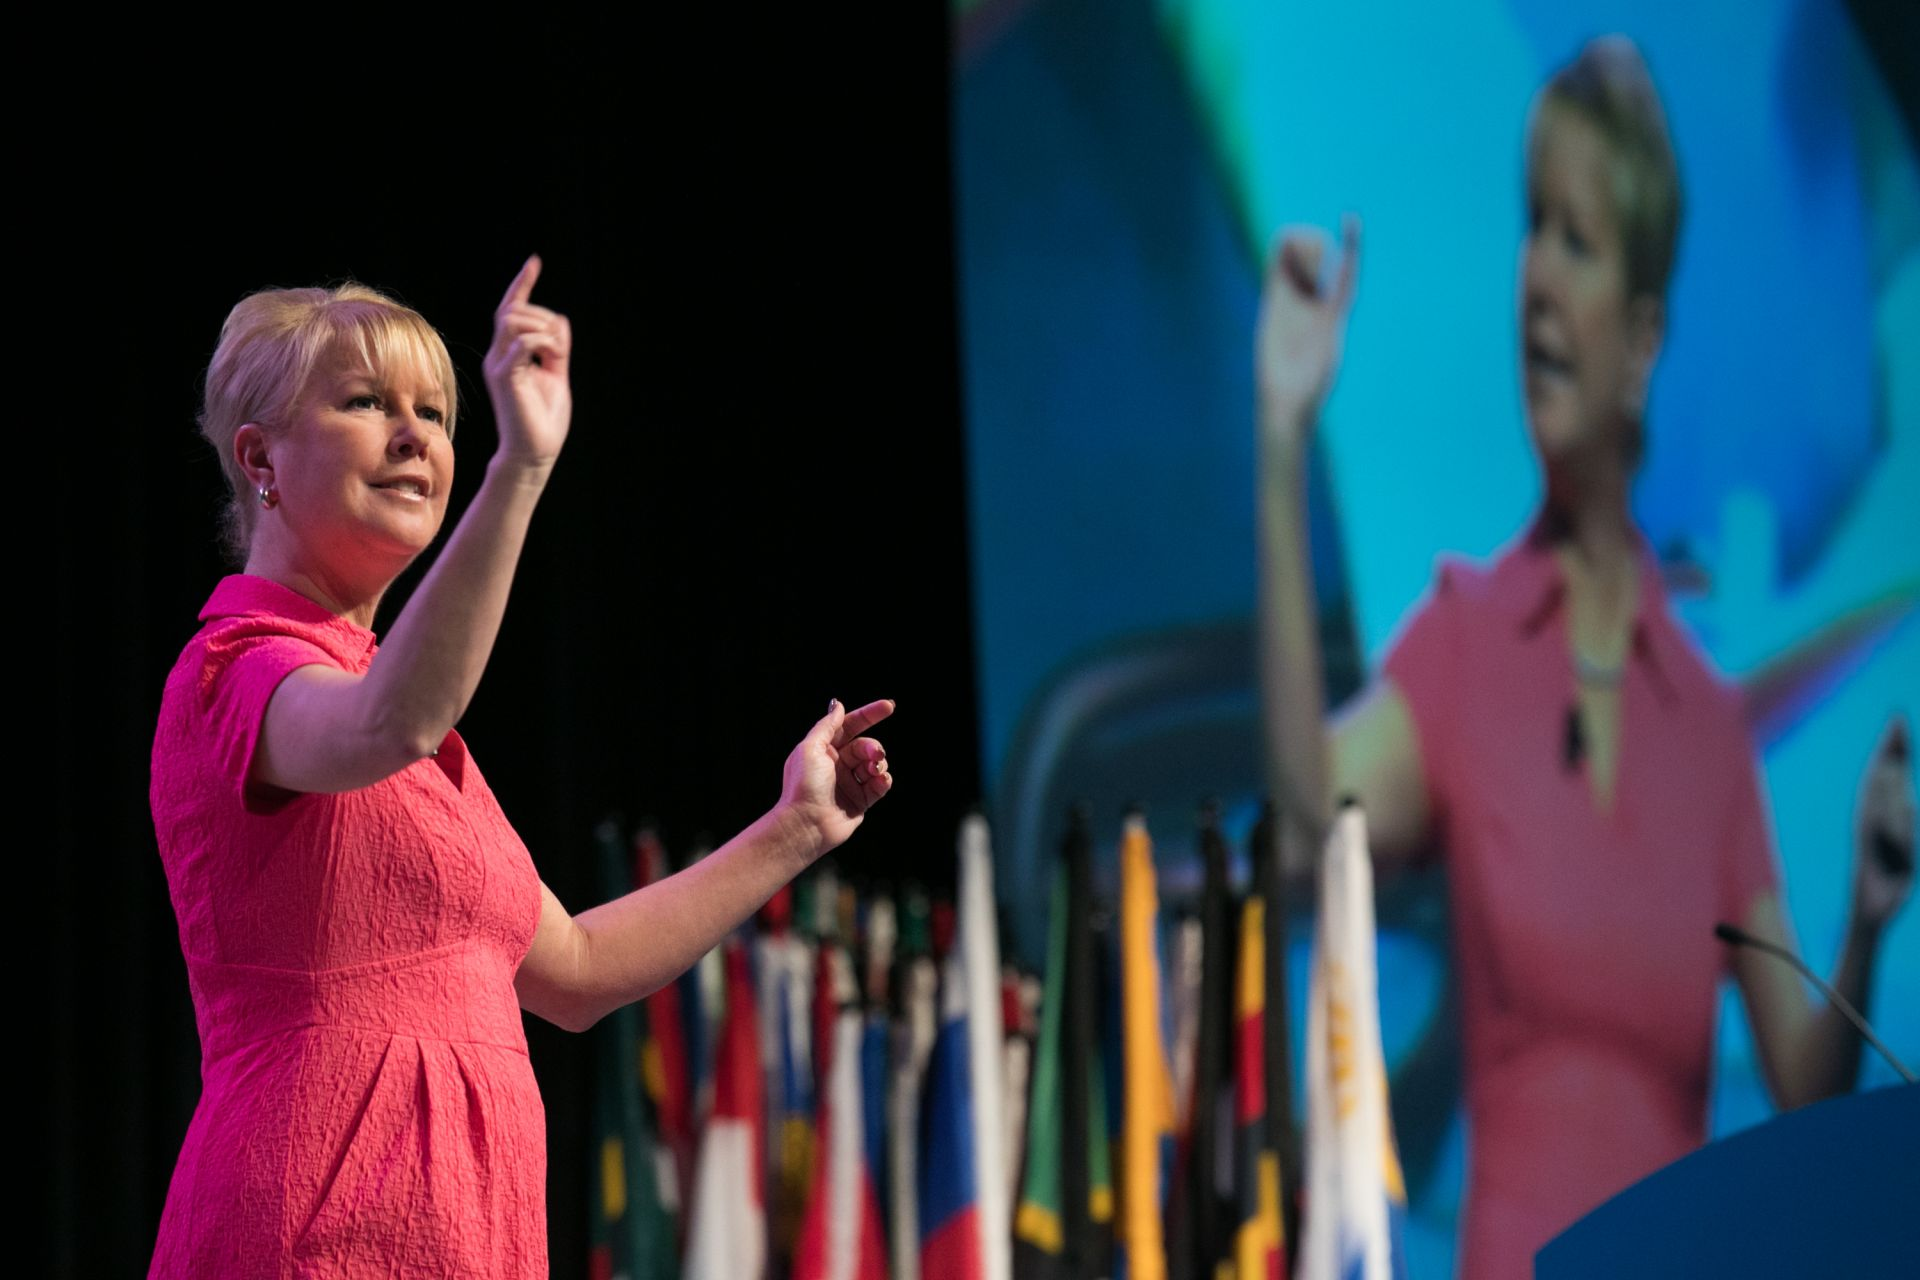 Jennifer Jones delivers a speech to an audience of Rotary members